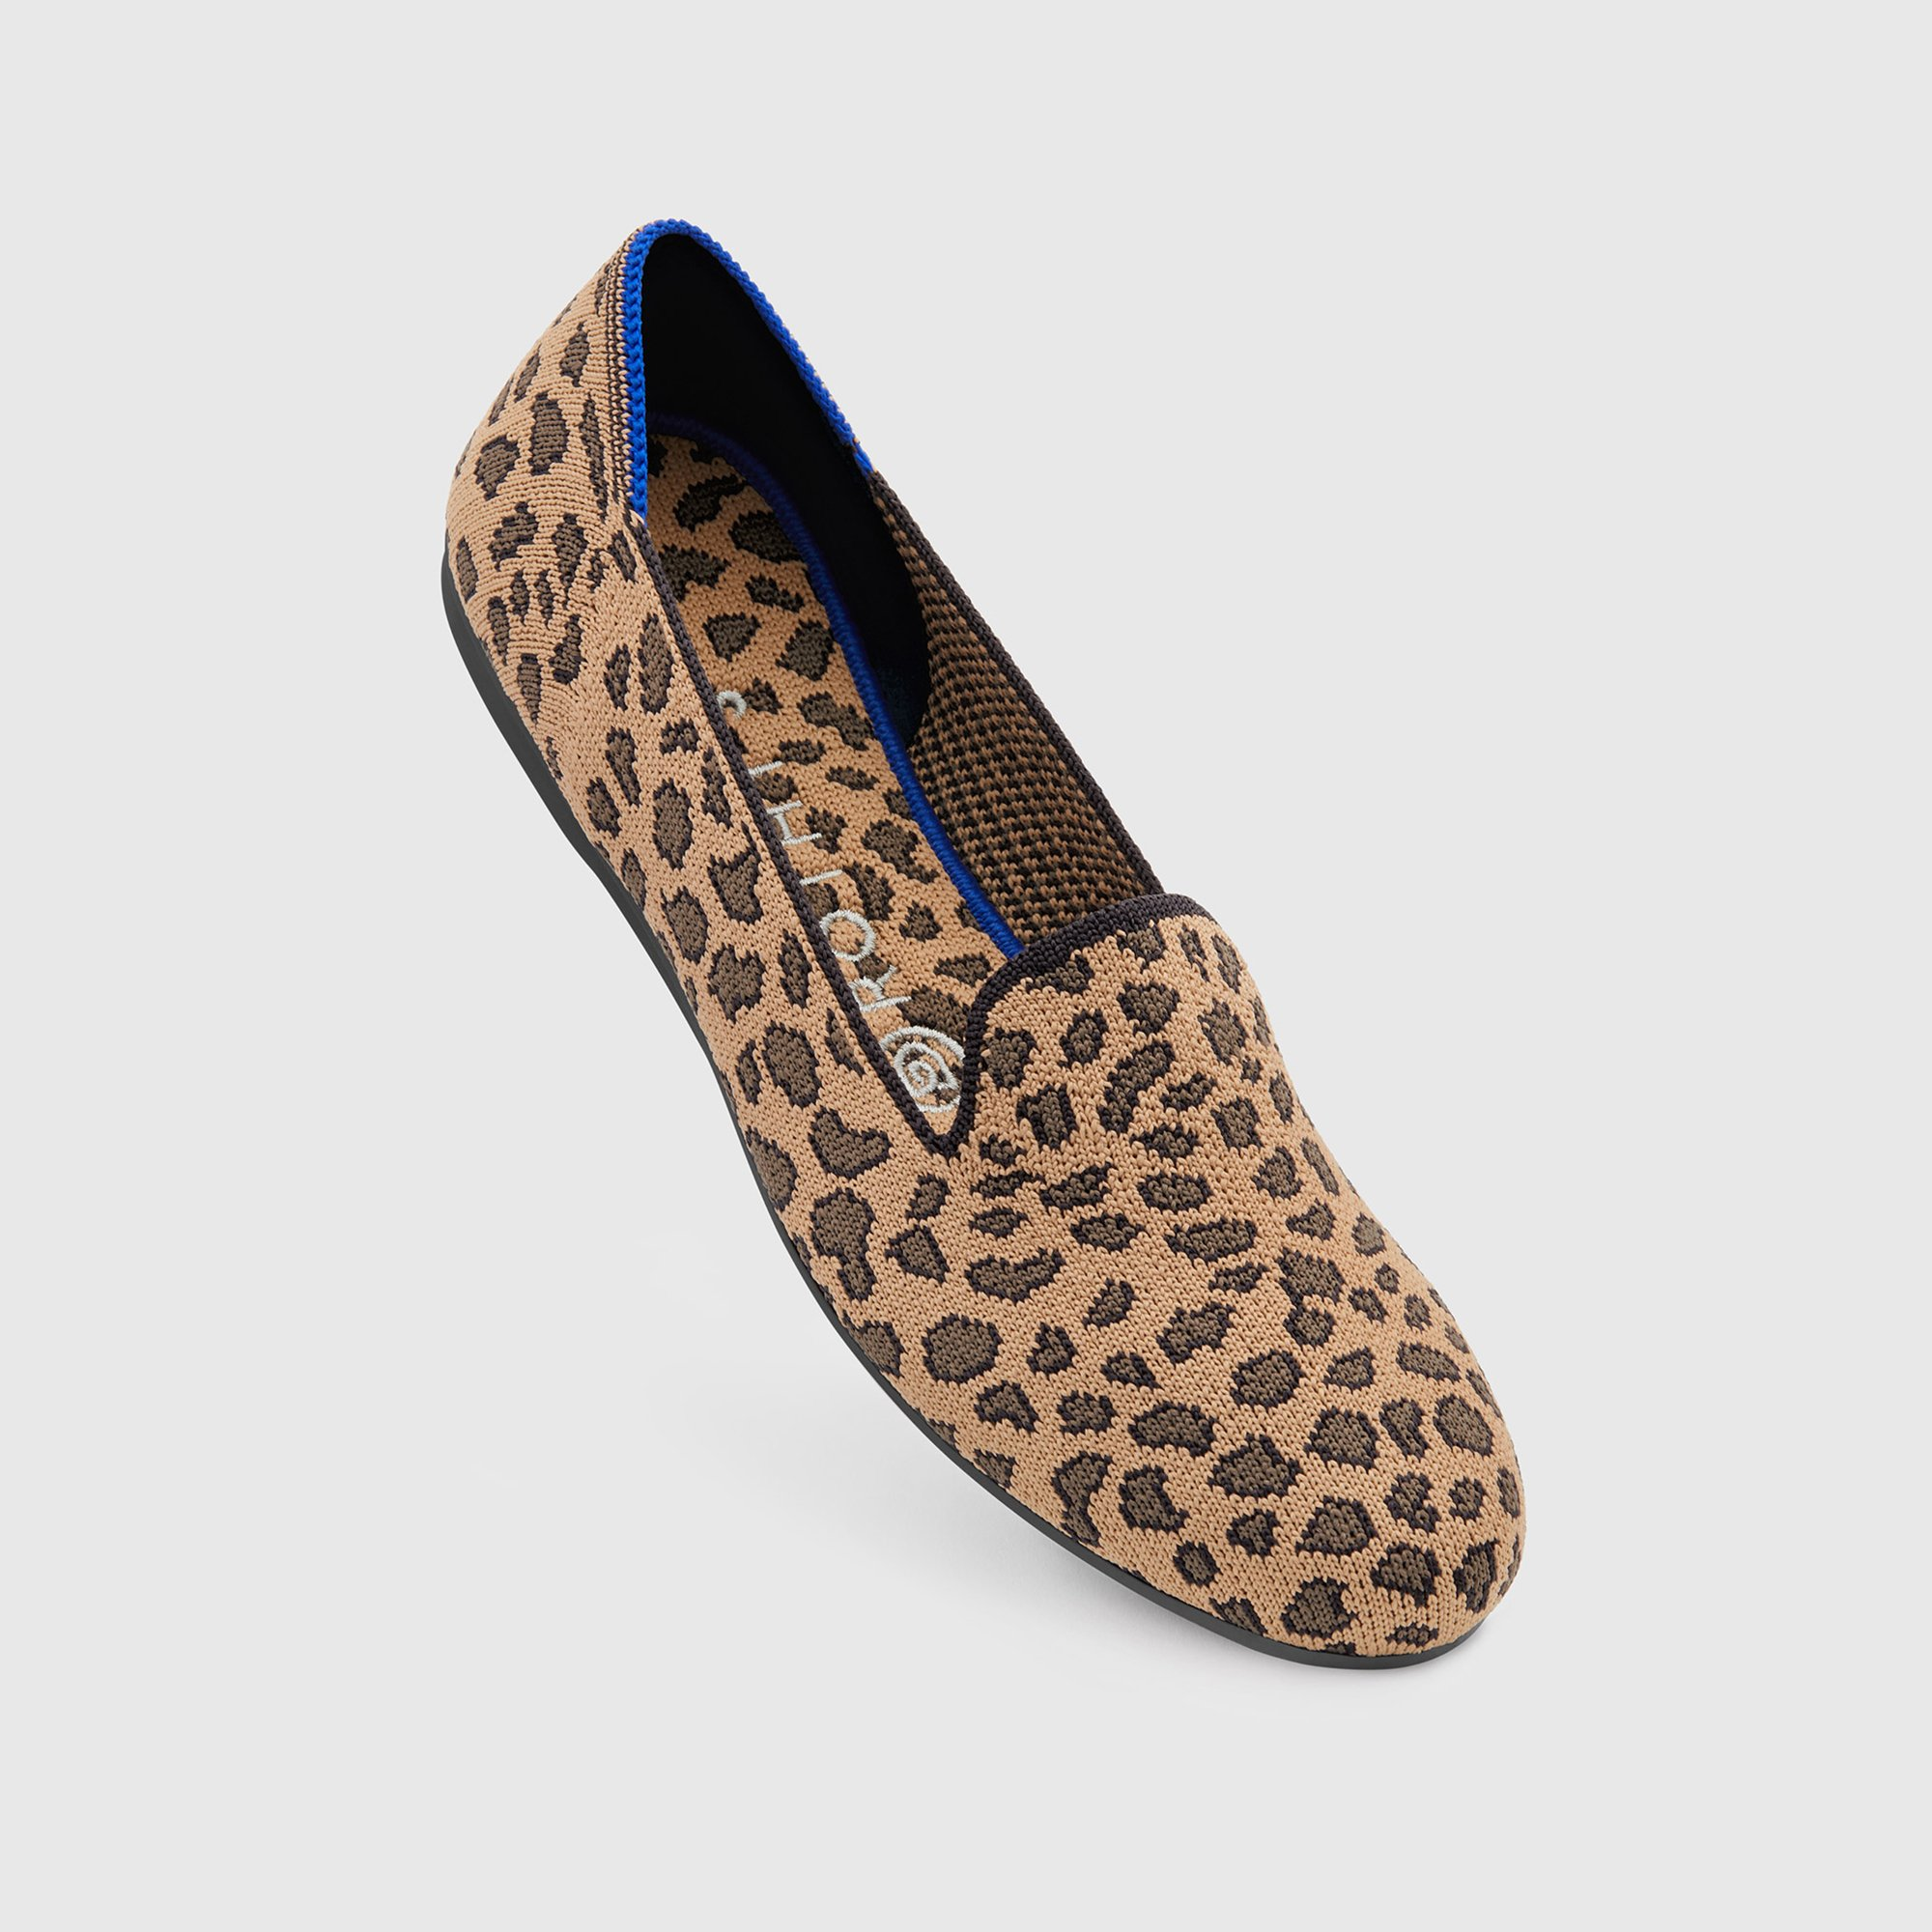 Rothy's: The Machine-Washable Loafer